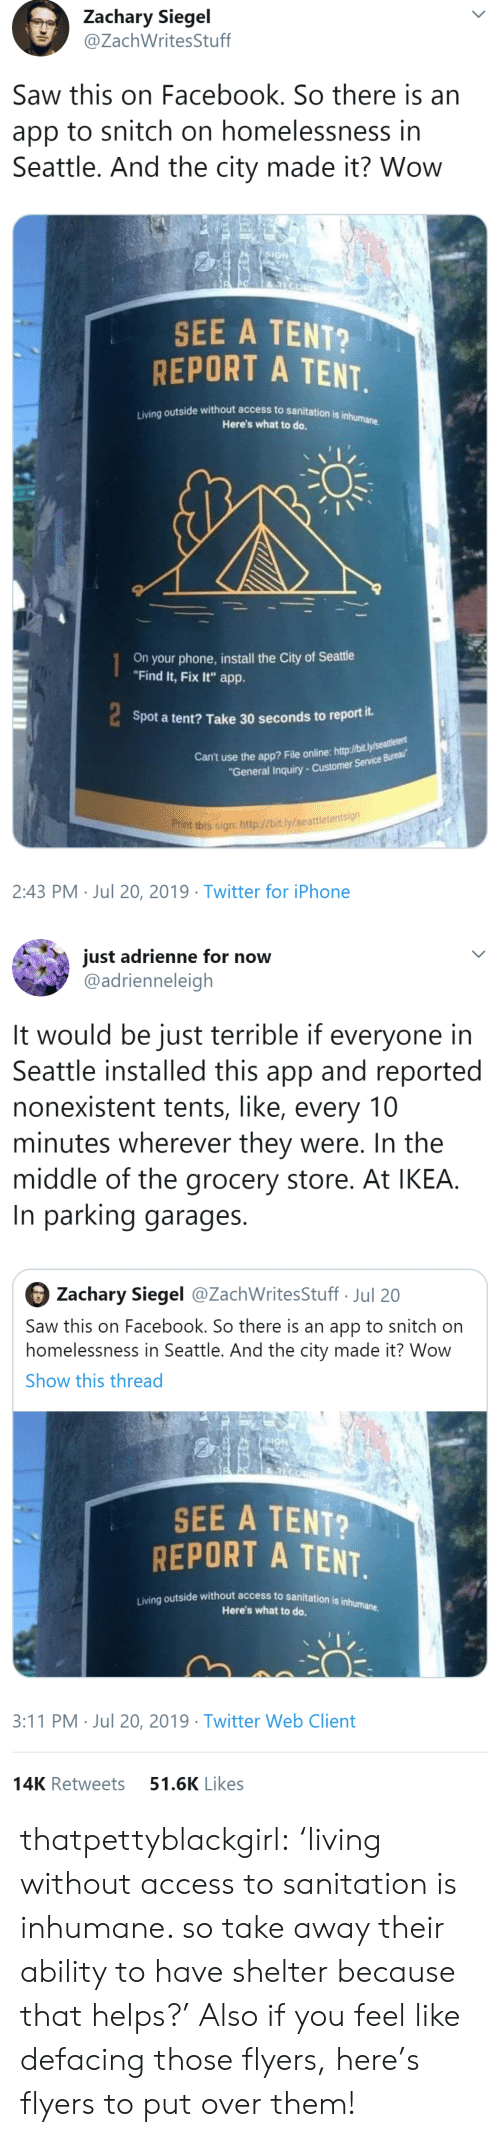 """snitch: Zachary Siegel  @ZachWritesStuff  Saw this on Facebook. So there is an  app to snitch on homelessness in  Seattle. And the city made it? Wow  SIGN  SEE A TENT?  REPORT A TENT  Living outside without access to sanitation is inhumane.  Here's what to do.  On your phone,install the City of Seattle  """"Find It, Fix It"""" app.  Spot a tent? Take 30 seconds to report it.  Can't use the app? File online: http://bit.ly/seaeu  """"General Inquiry-Customer Service Bureau  Print this sign: http://bit.ly/seattletentsign  2:43 PM Jul 20, 2019 Twitter for iPhone   just adrienne for now  @adrienneleigh  It would be just terrible if everyone in  Seattle installed this app and reported  nonexistent tents, like, every 10  minutes wherever they were. In the  middle of the grocery store. At IKEA.  In parking garages  Zachary Siegel @ZachWritesStuff Jul 20  Saw this on Facebook. So there is an app to snitch on  homelessness in Seattle. And the city made it? Wow  Show this thread  SIGN  SEE A TENT?  REPORT A TENT.  Living outside without access to sanitation is inhumane  Here's what to do.  3:11 PM Jul 20, 2019 Twitter Web Client  51.6K Likes  14K Retweets thatpettyblackgirl:    'living without access to sanitation is inhumane. so take away their ability to have shelter because that helps?'     Also if you feel like defacing those flyers, here's flyers to put over them!"""